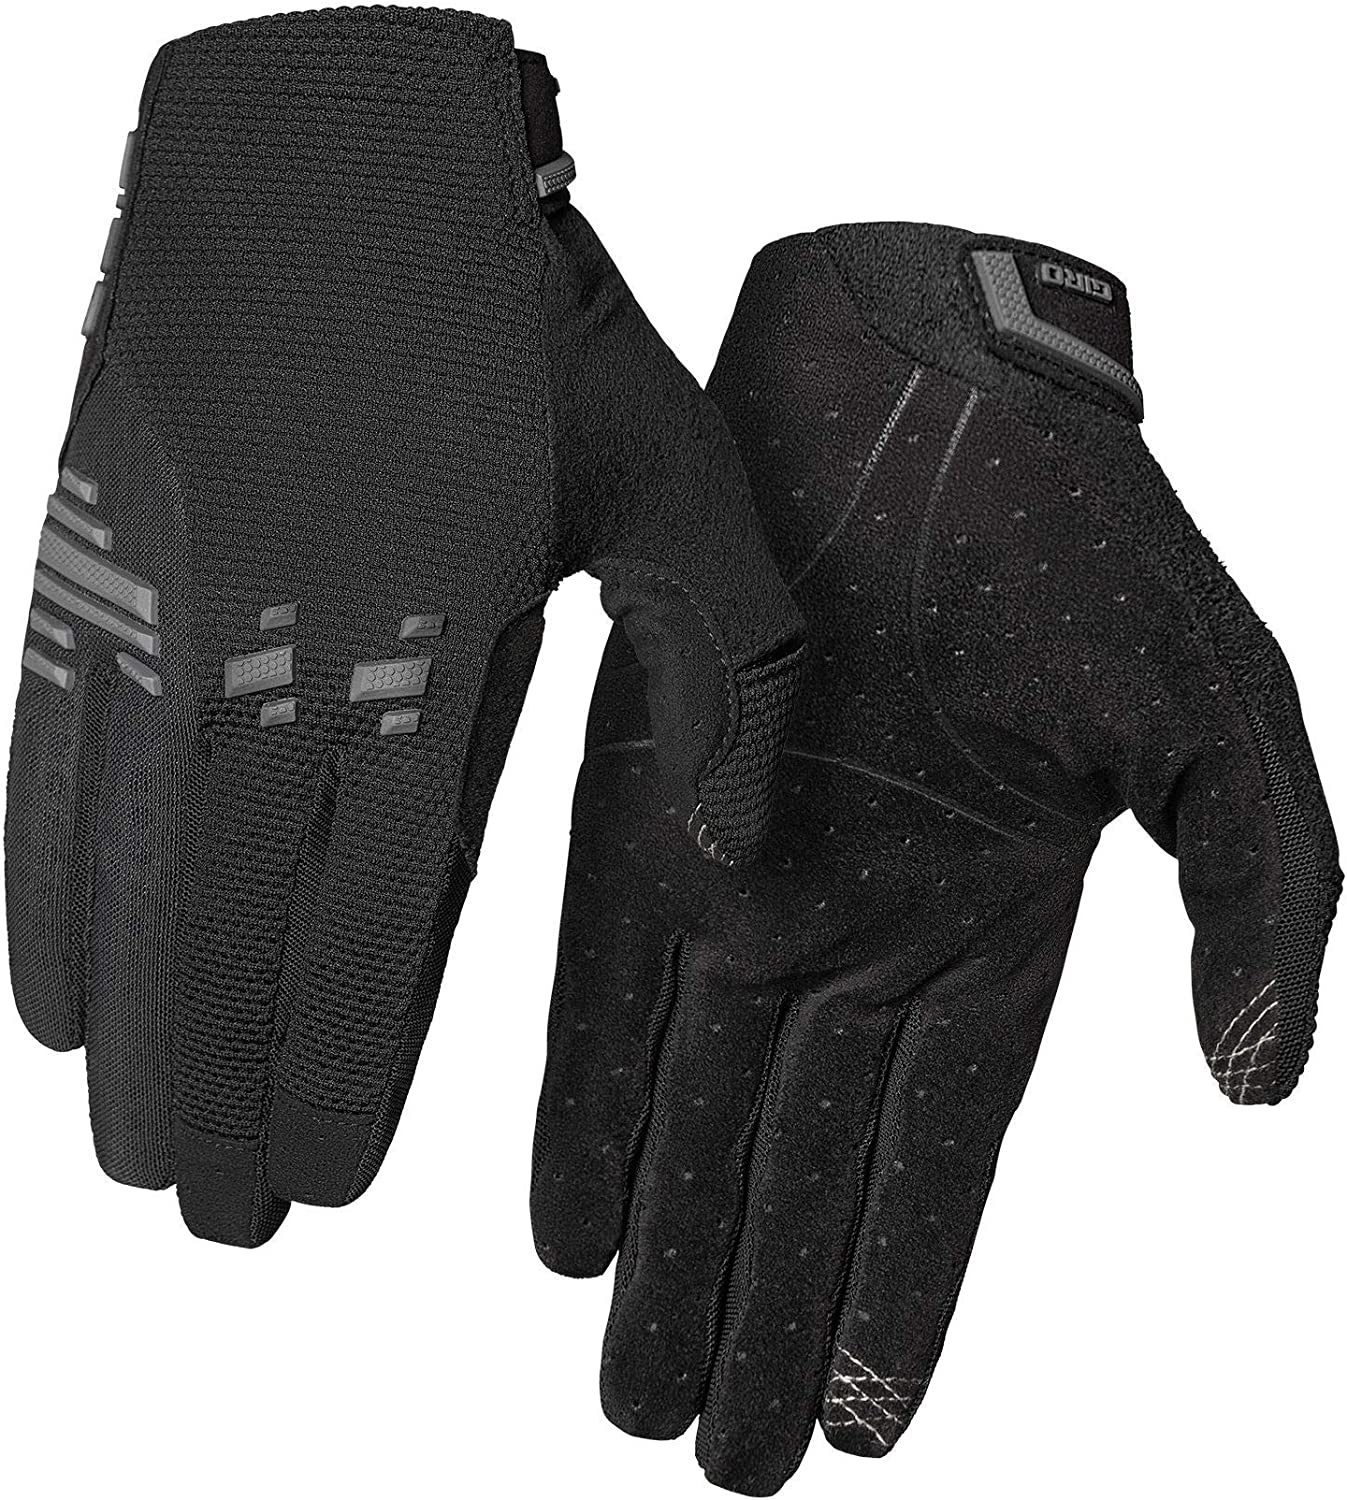 Giro Havoc Men's Direct sale 2021 spring and summer new of manufacturer Gloves Cycling Mountain